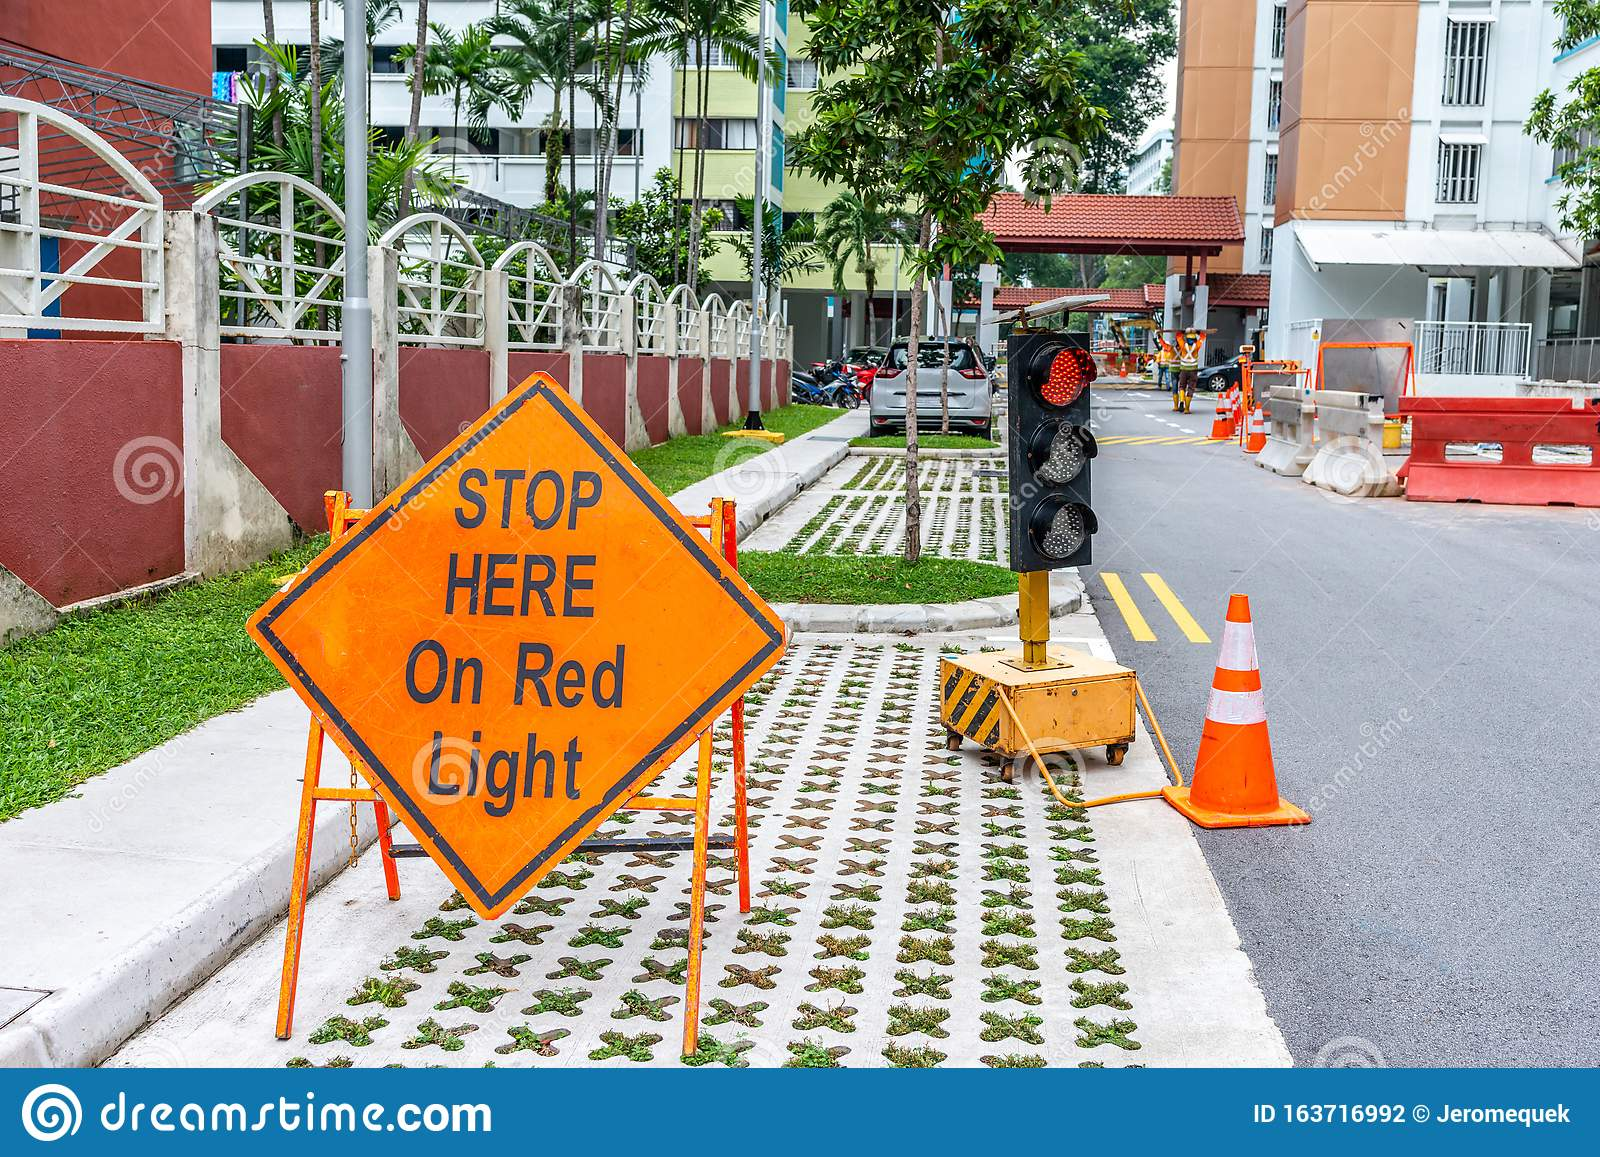 Stop Here On Red Traffic Light Sign Stock Photo Image Of Posted Street 163716992